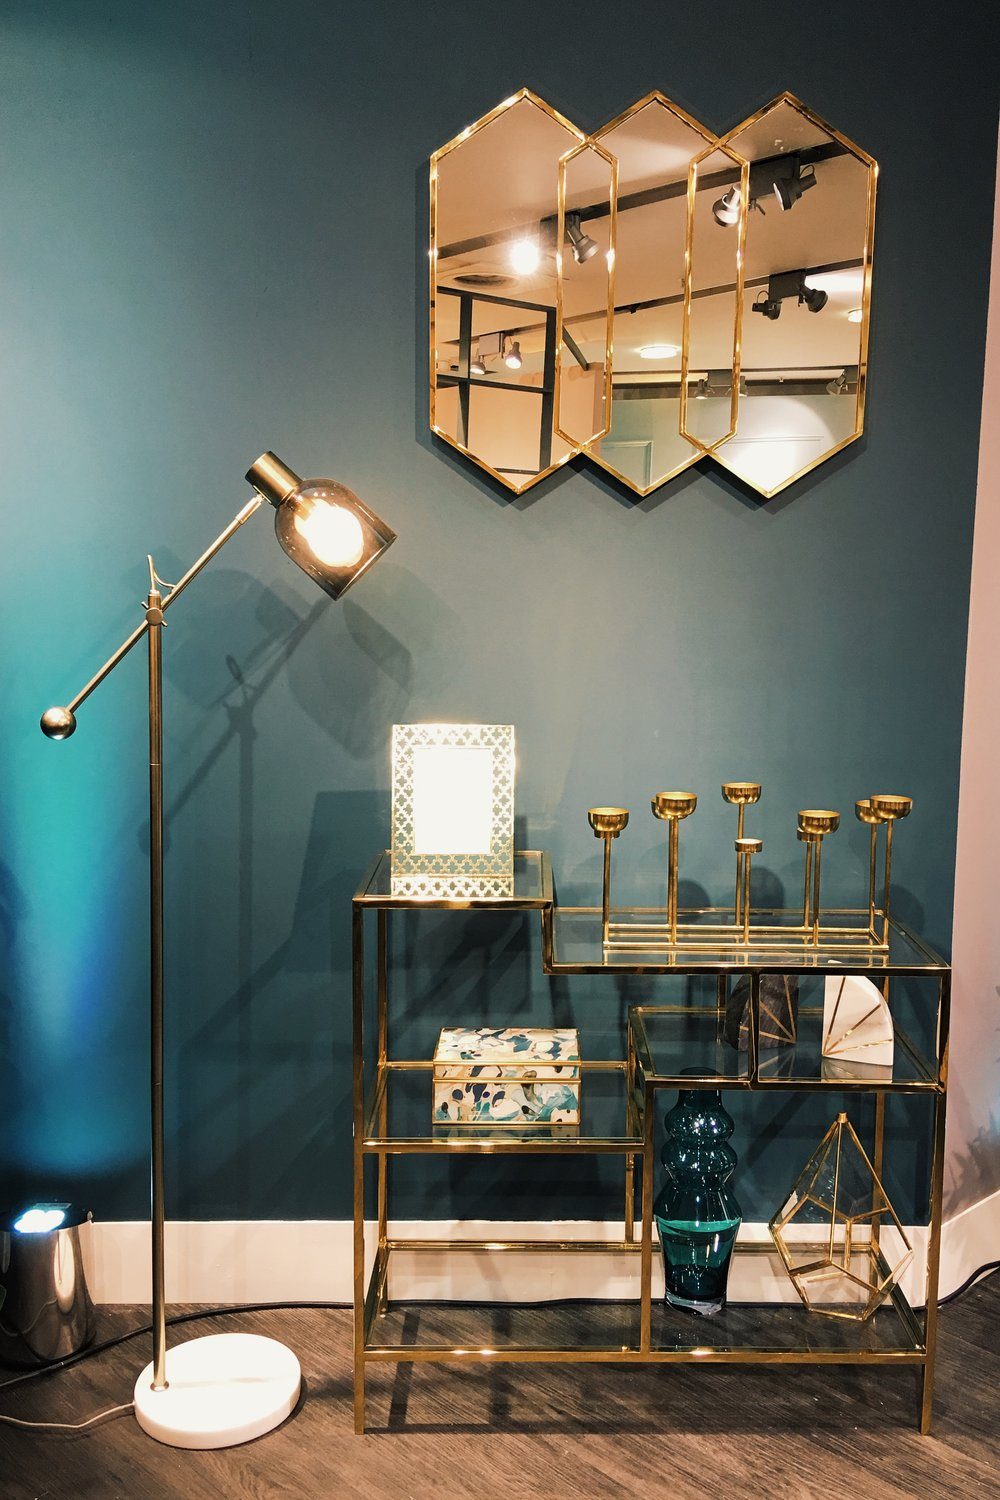 Conran Caleb Task Floor Lamp, £149. Barclay Shelving, £399. Triple Geo Mirror, £149. Multi-tea Light Holder, £49.50. Conran Marble Book Ends, £29.50 for the set. Aria Trinket box, £29.50. Gold Triangular Hurricane, £29.50. Conran Tall Vase, £29.50. Photo frame TBC. All M&S.